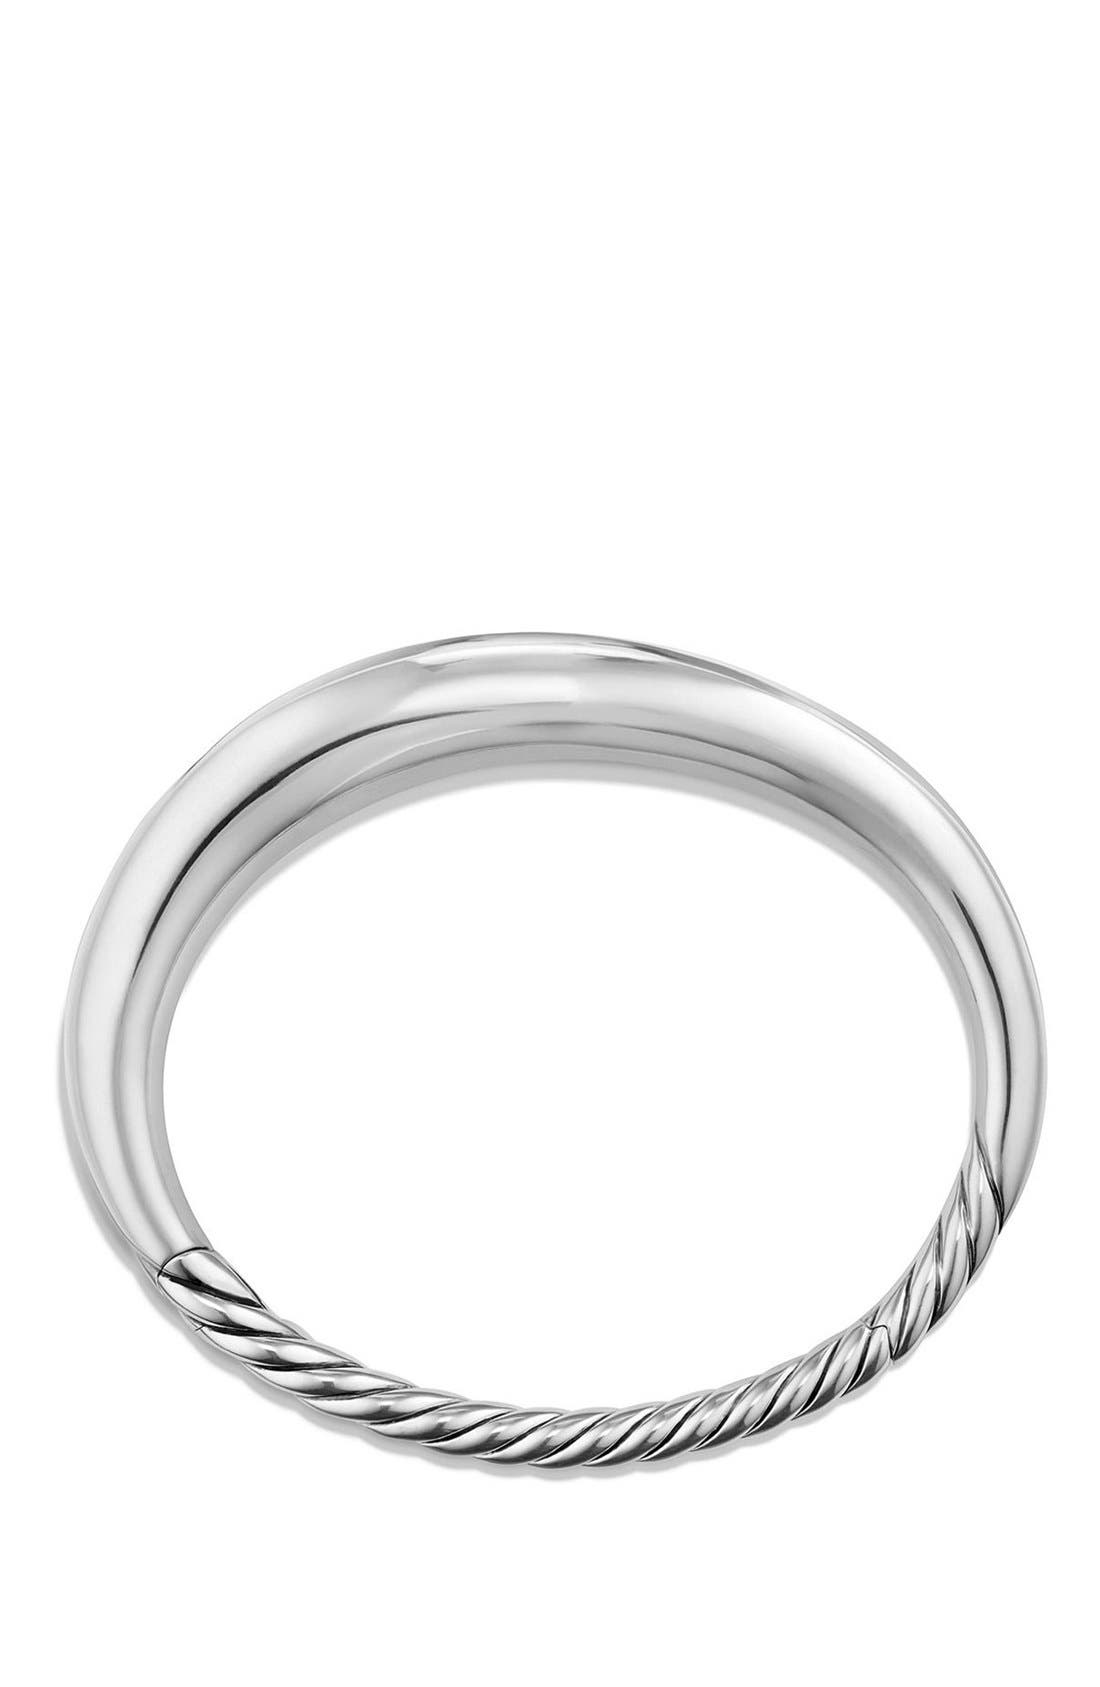 'Pure Form' Small Sterling Silver Bracelet,                             Alternate thumbnail 2, color,                             SILVER